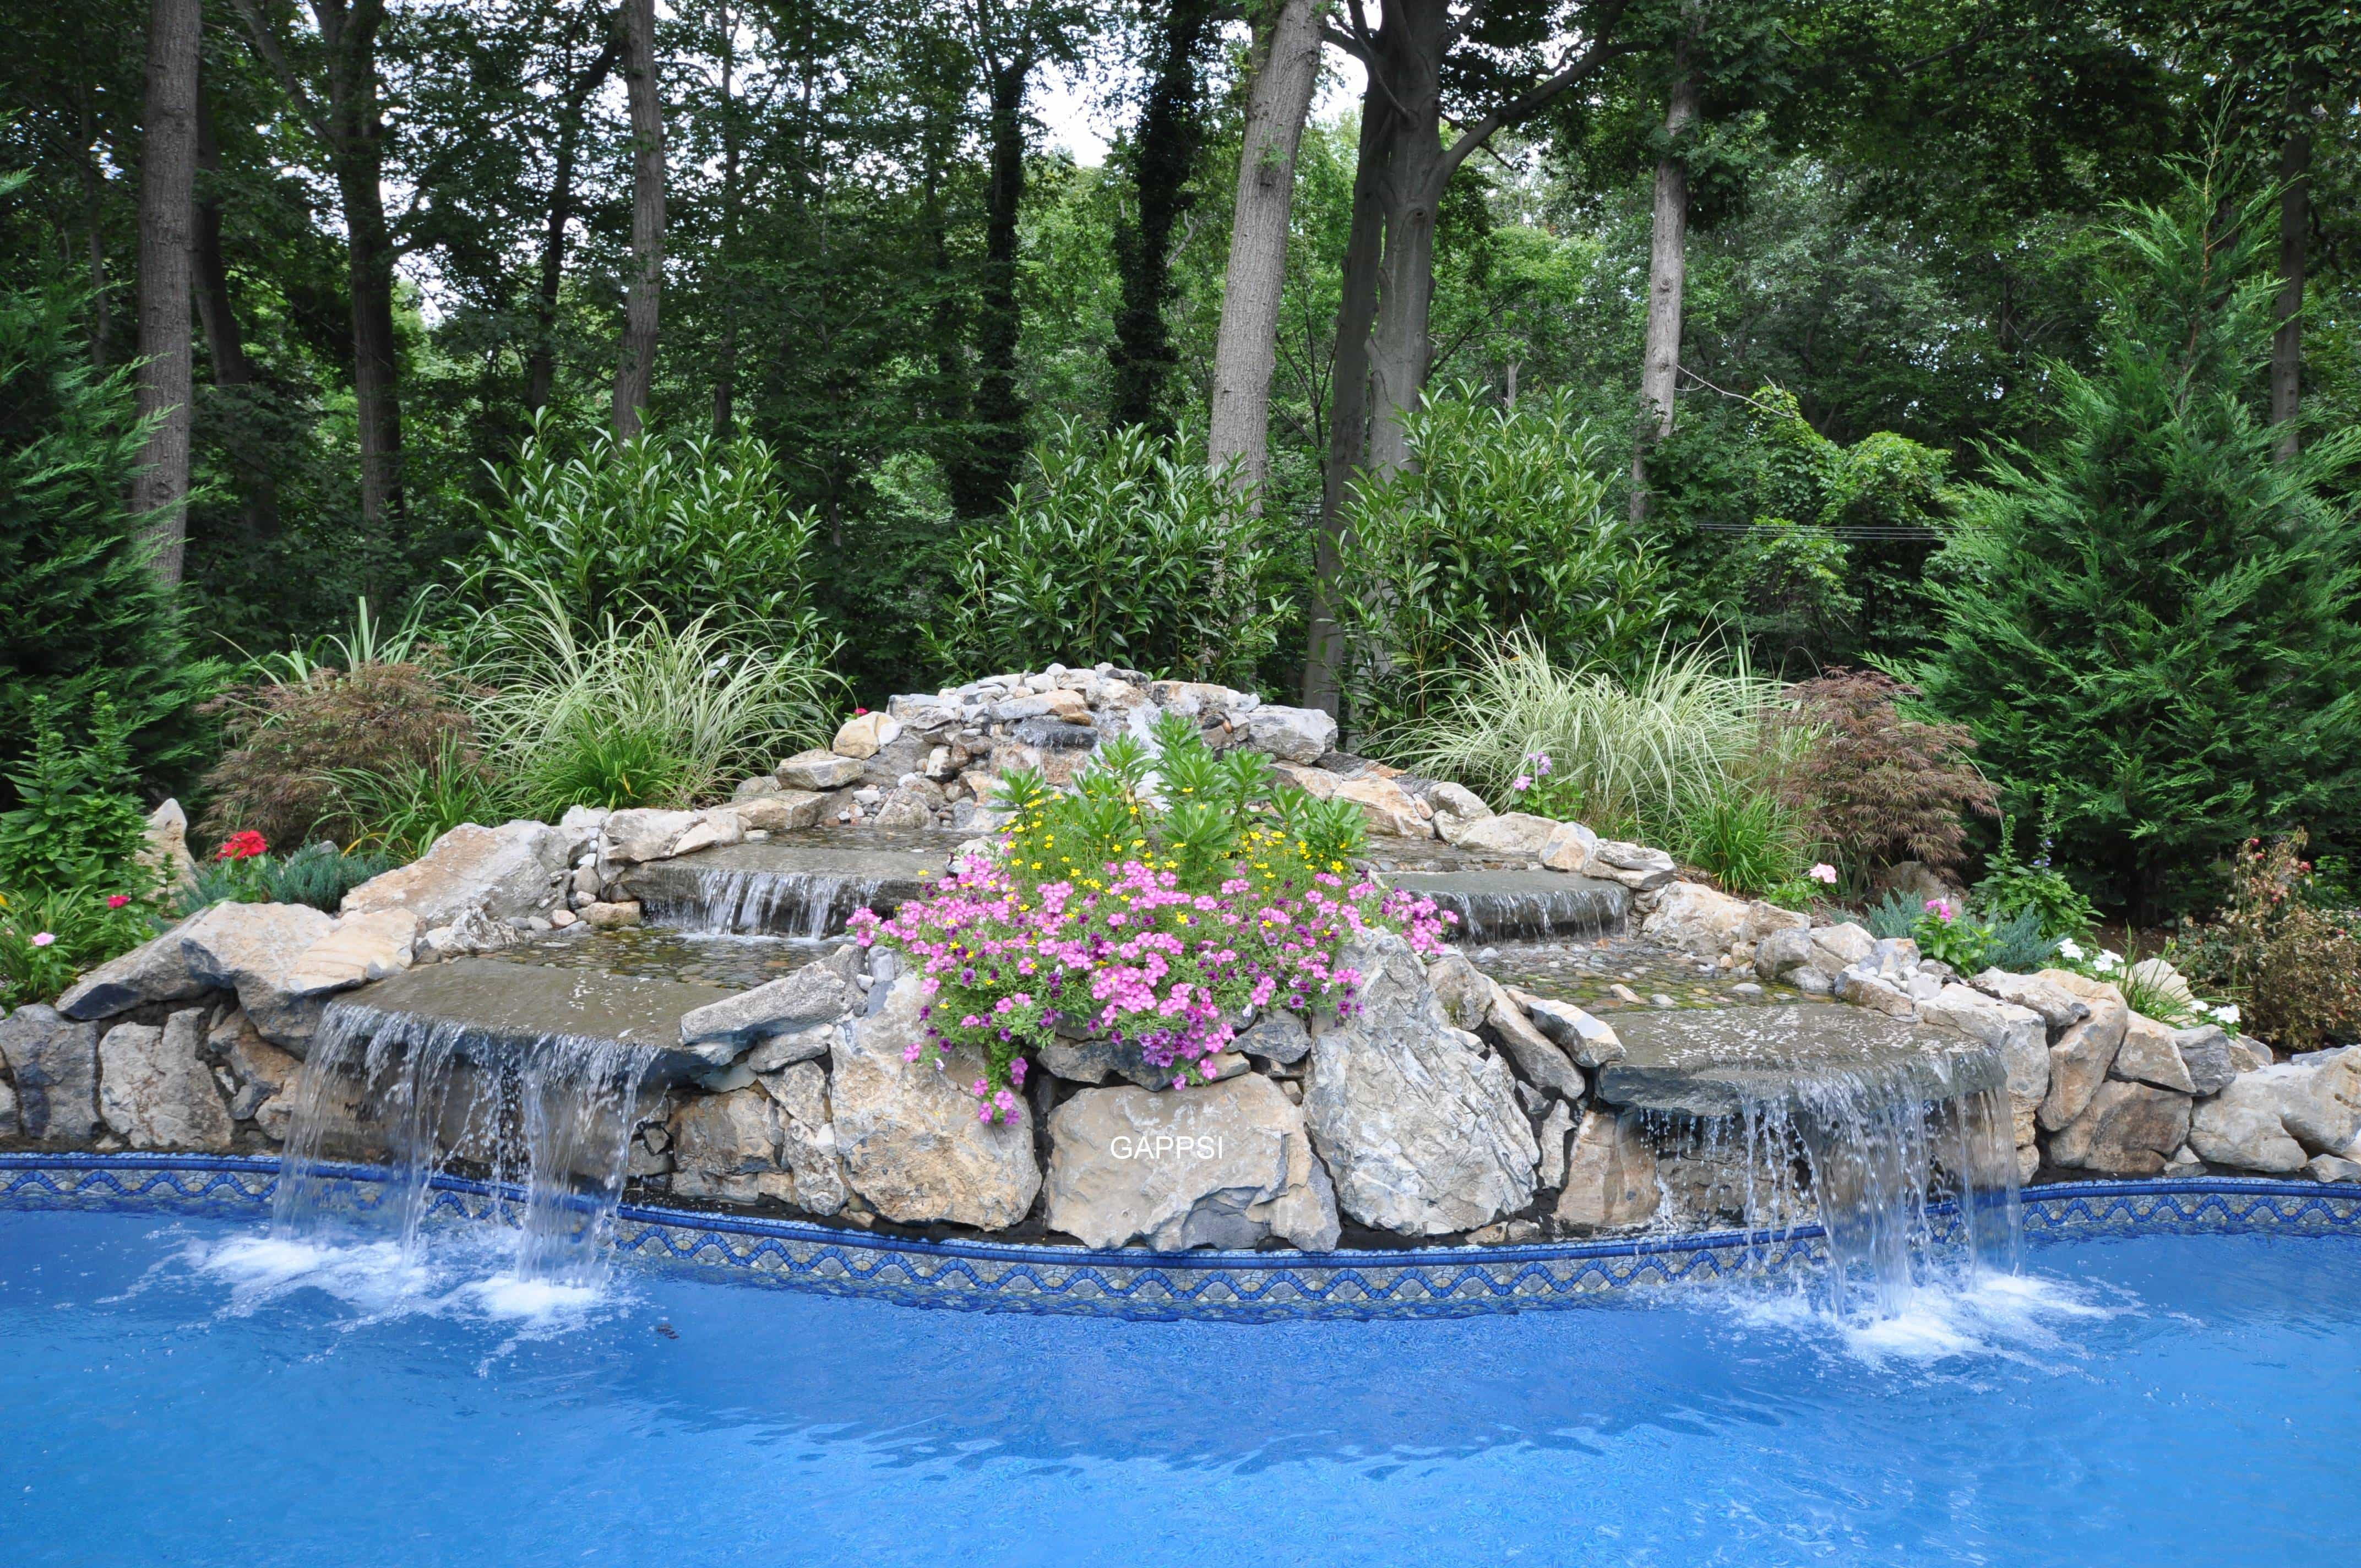 https://gappsi.com/wp-content/uploads/2017/03/Landscape-Waterfeature-Designers-Long-Island-NY-Gappsi.jpg